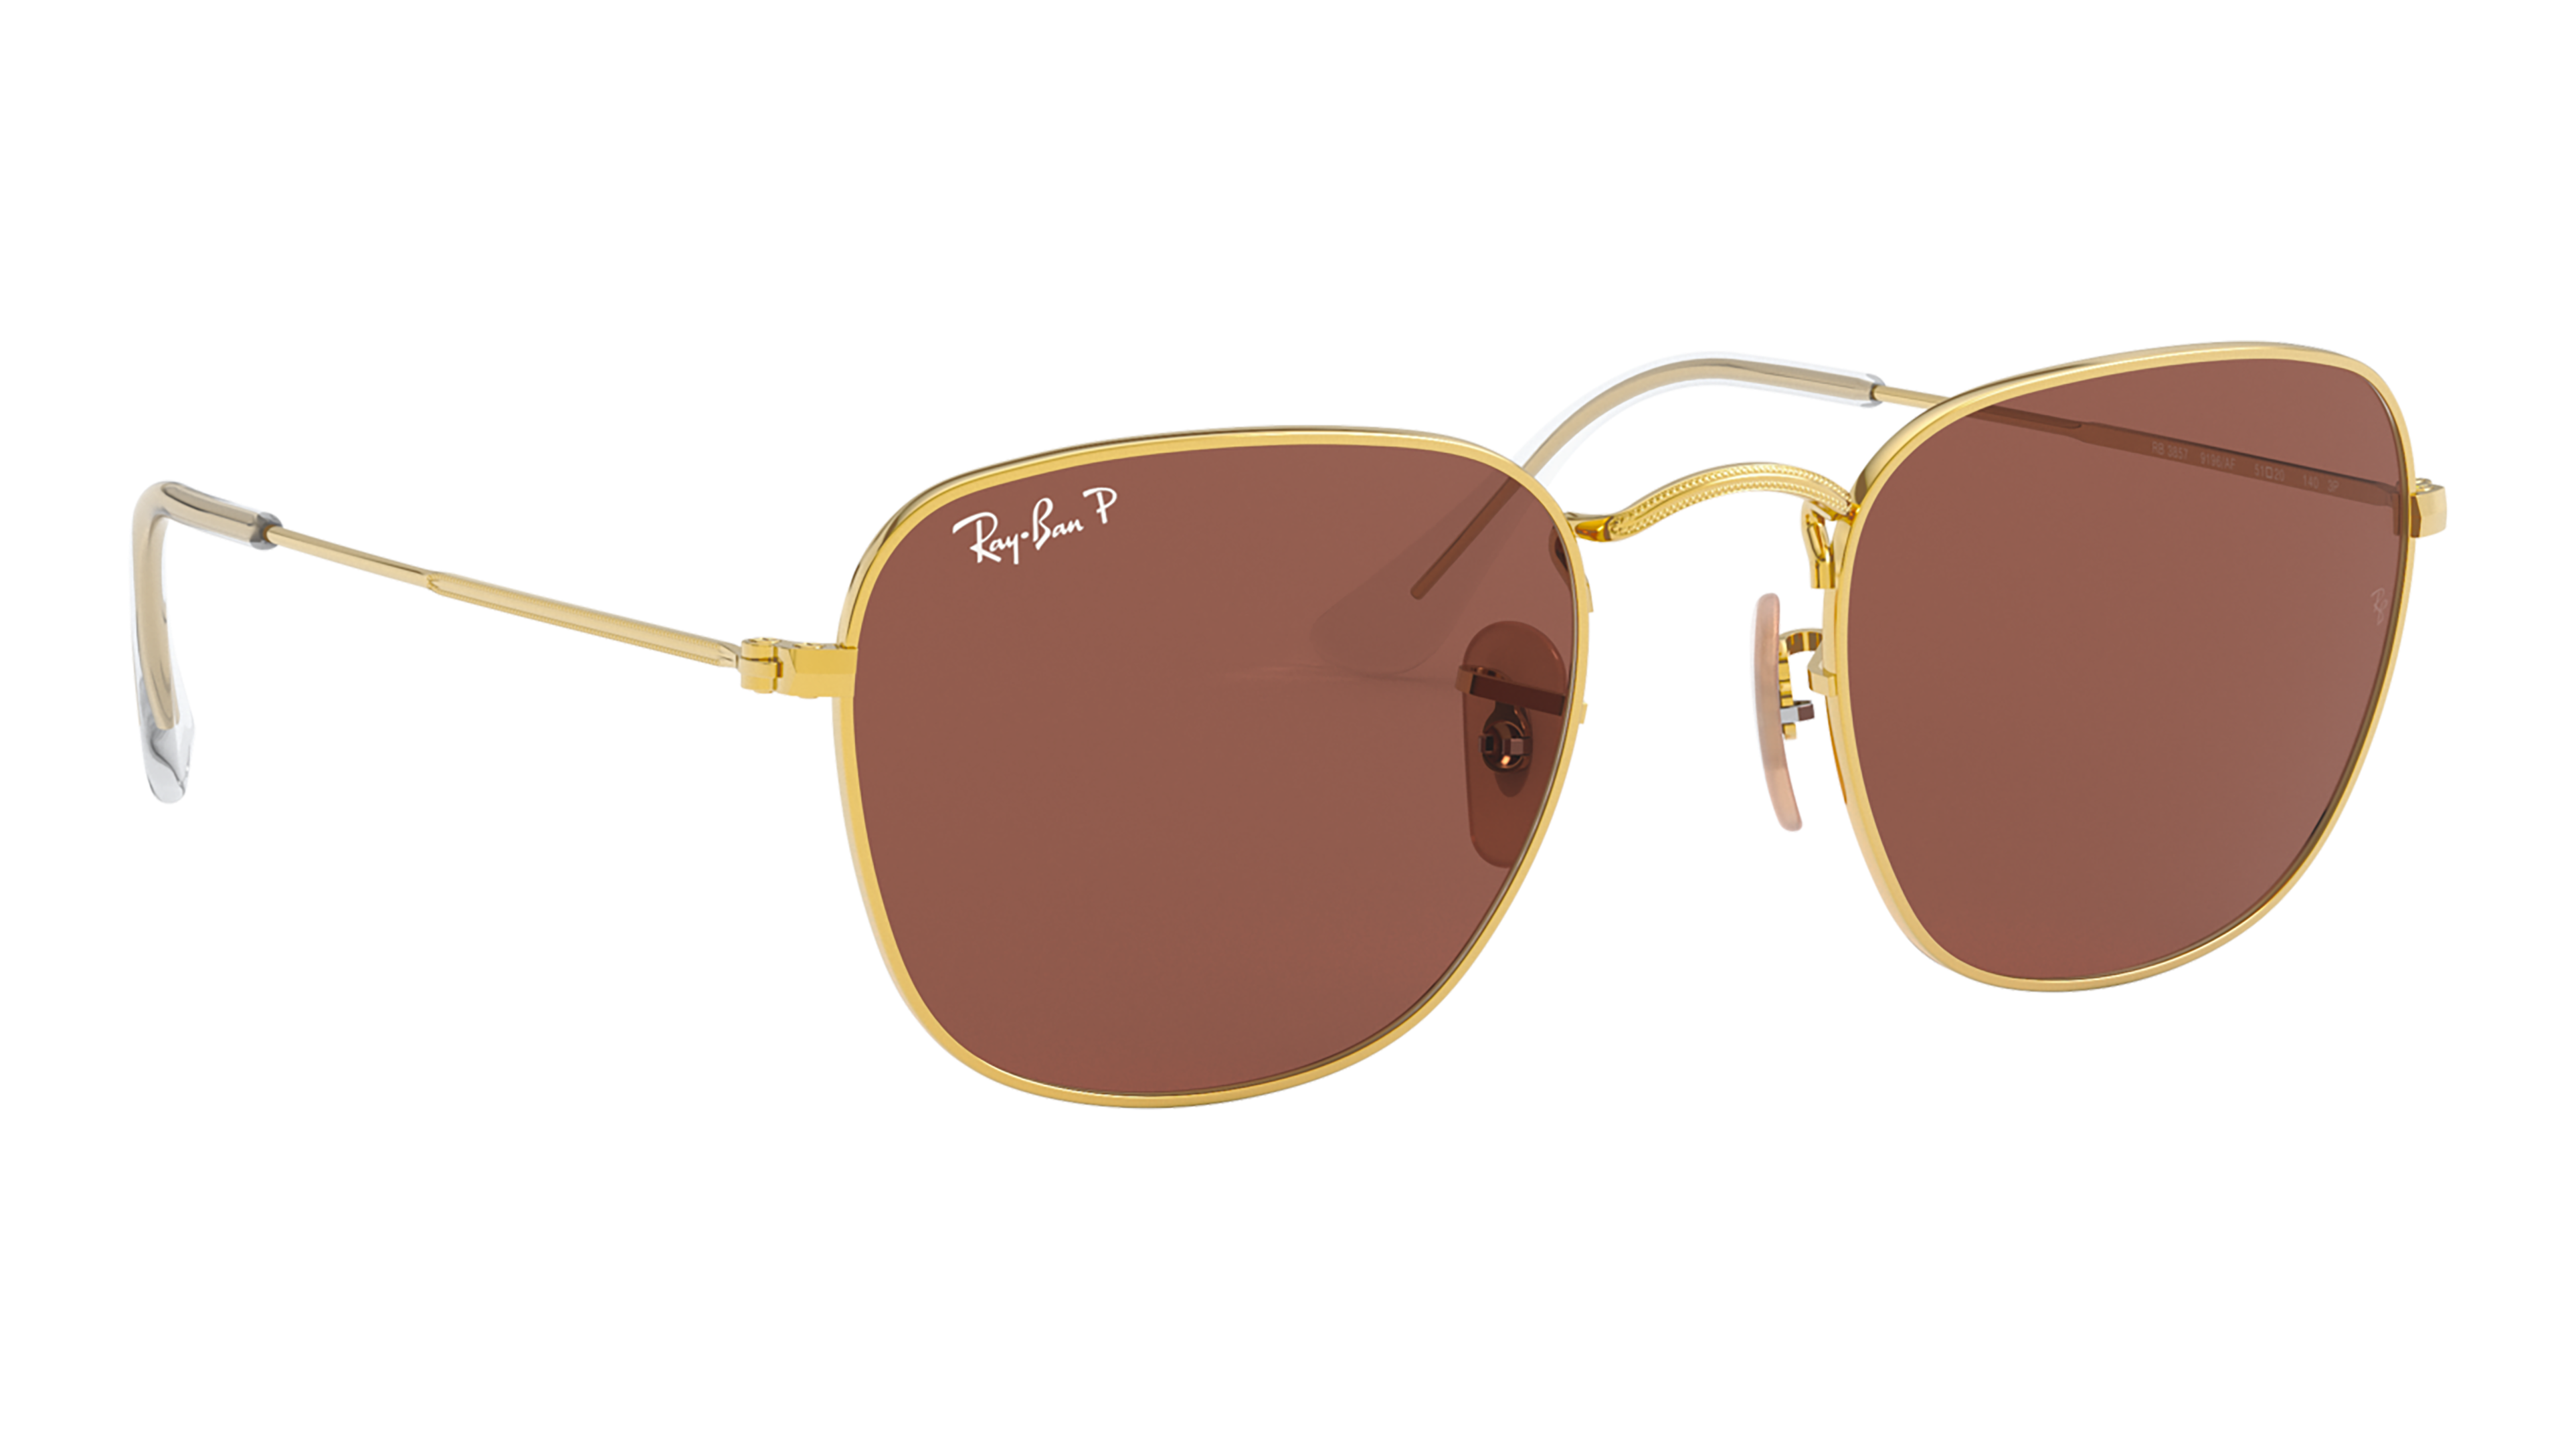 Angle_Right02 Ray-Ban Ray-Ban 0RB3857 9196AF 51/20 Goud/Rood